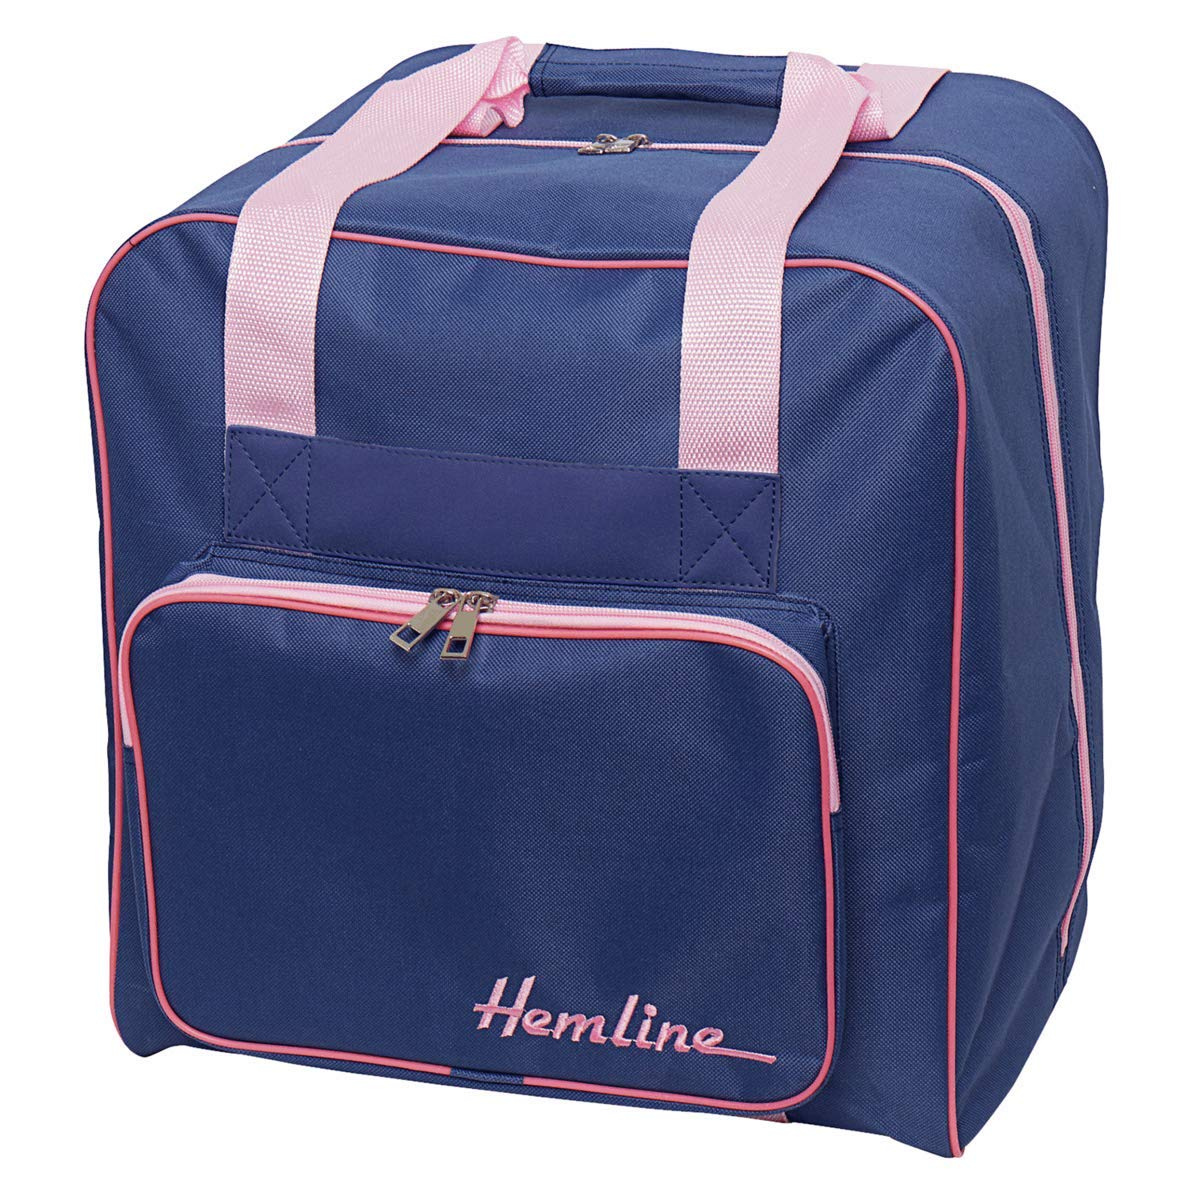 Hemline Premium Overlocker Storage Bag - Blue/Pink by Hemline